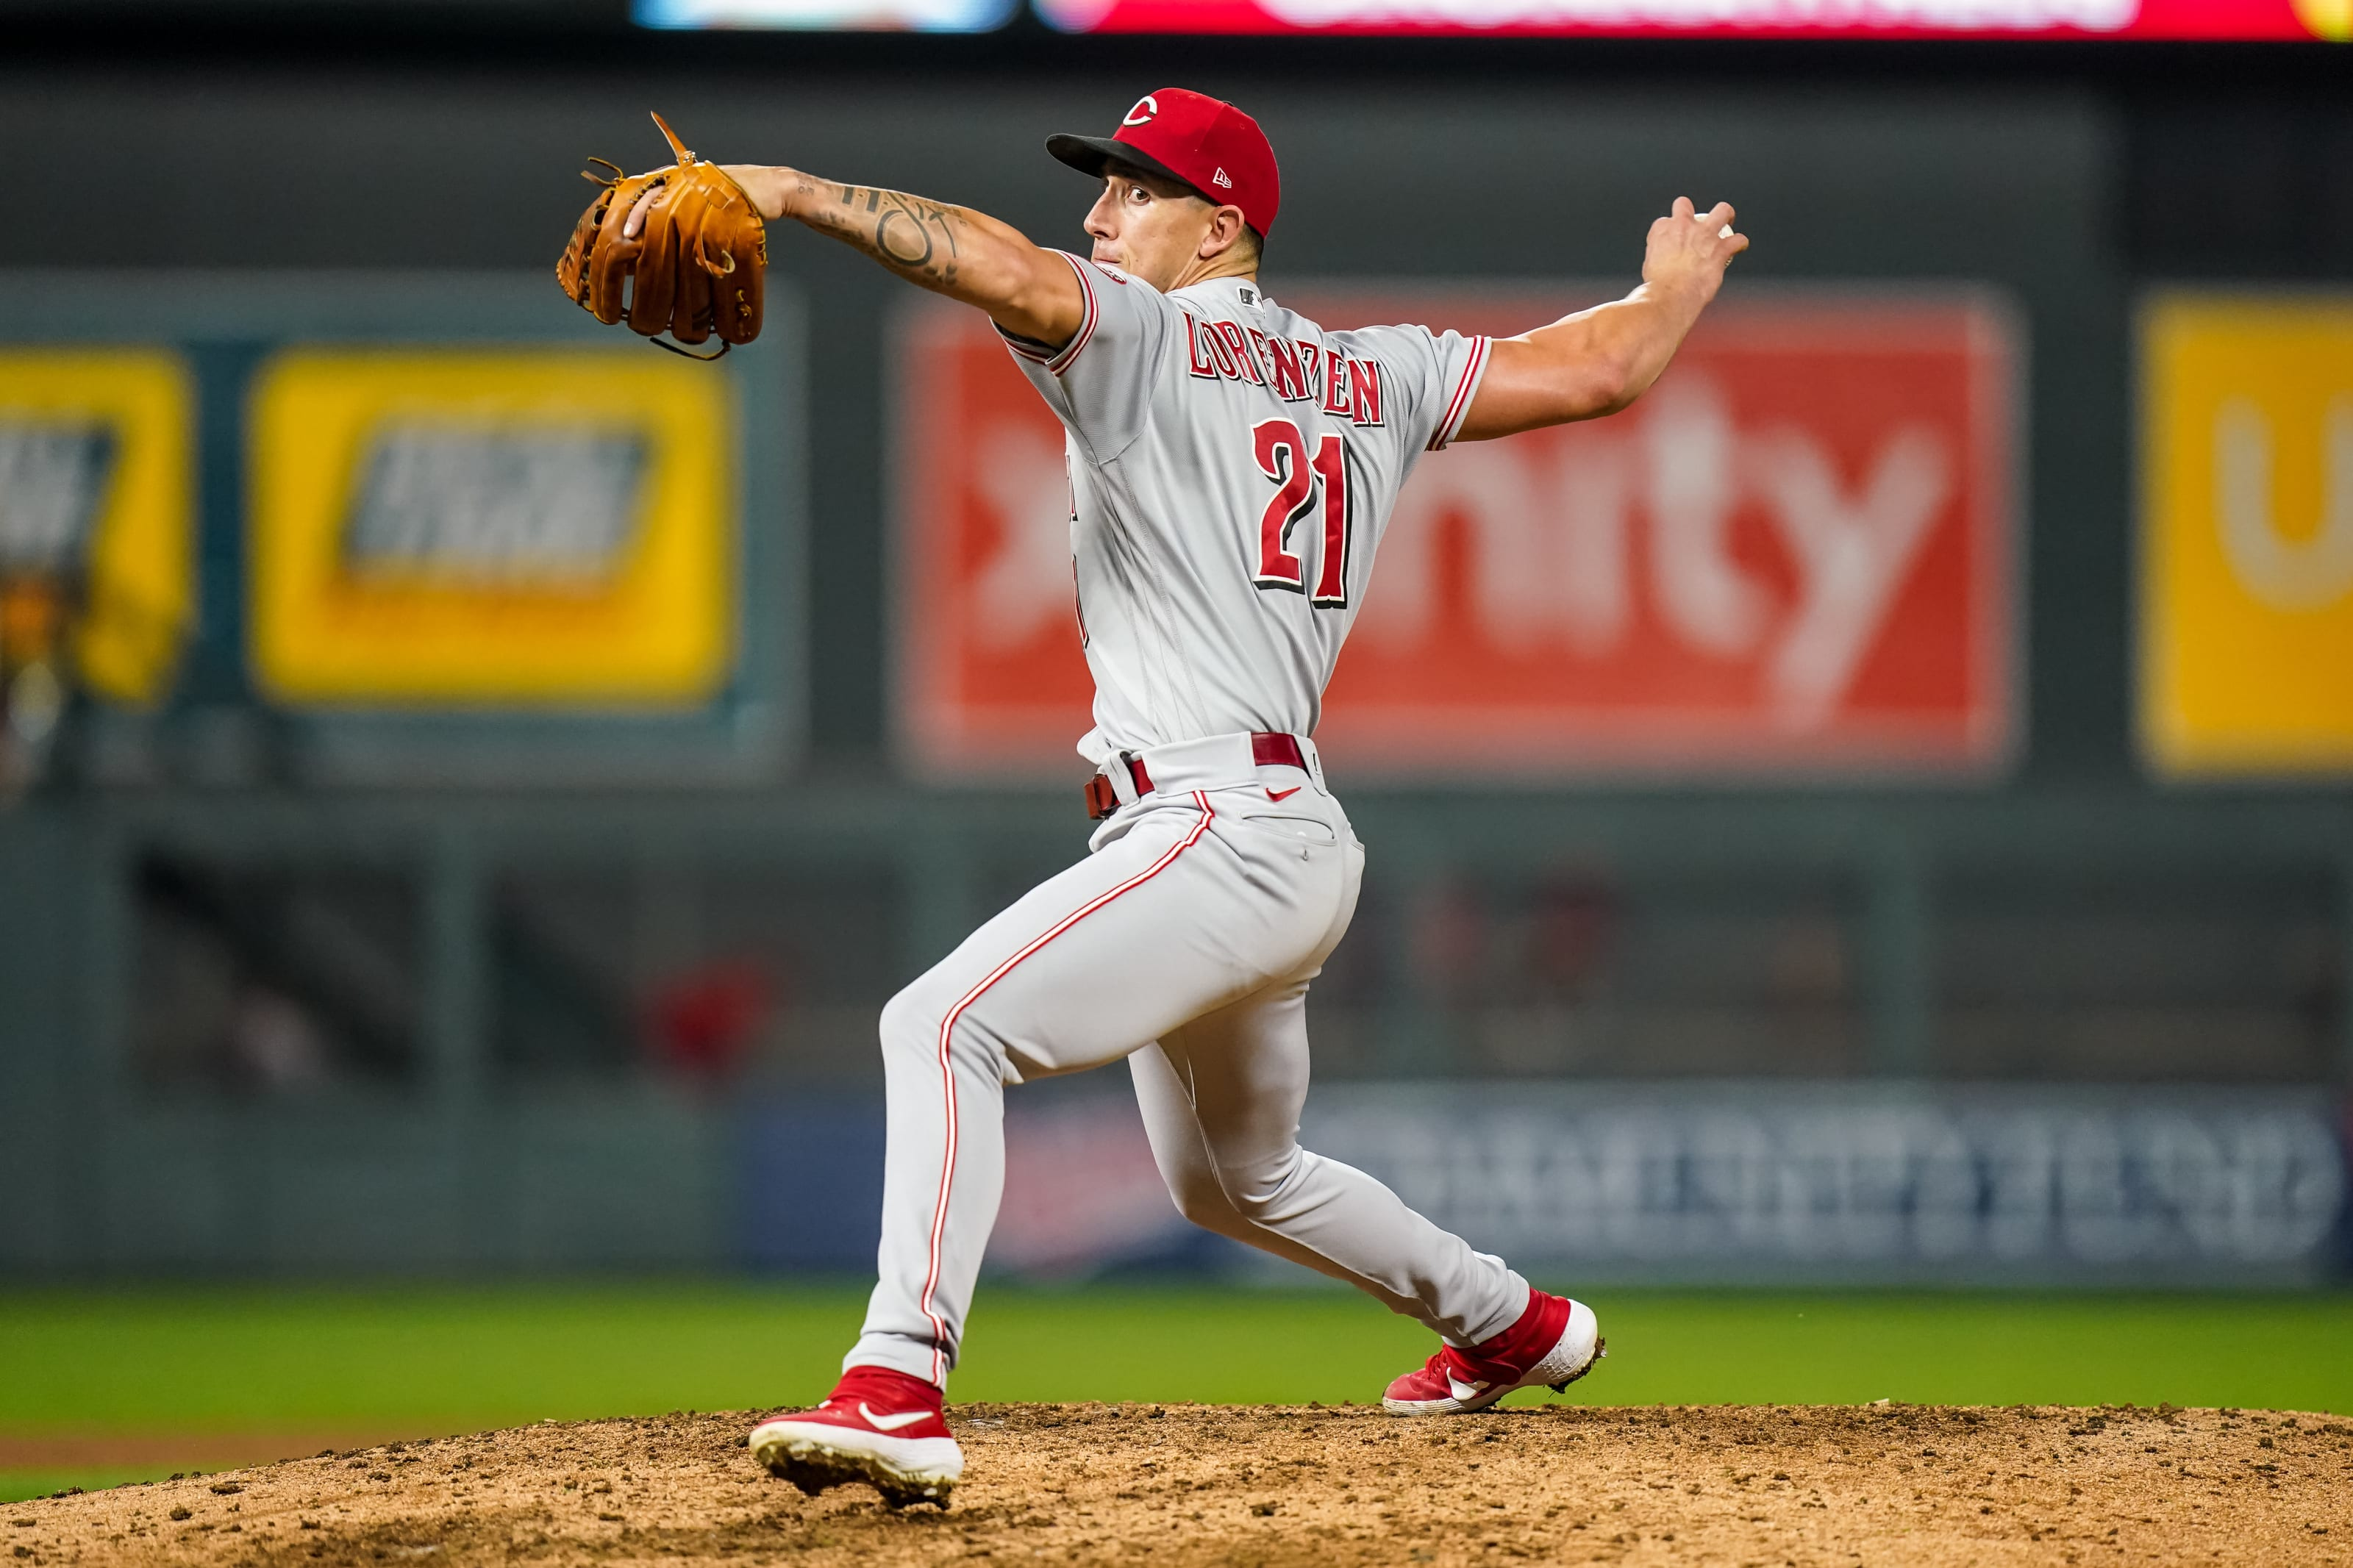 Michael Lorenzen #21 of the Cincinnati Reds pitches against the Minnesota Twins.